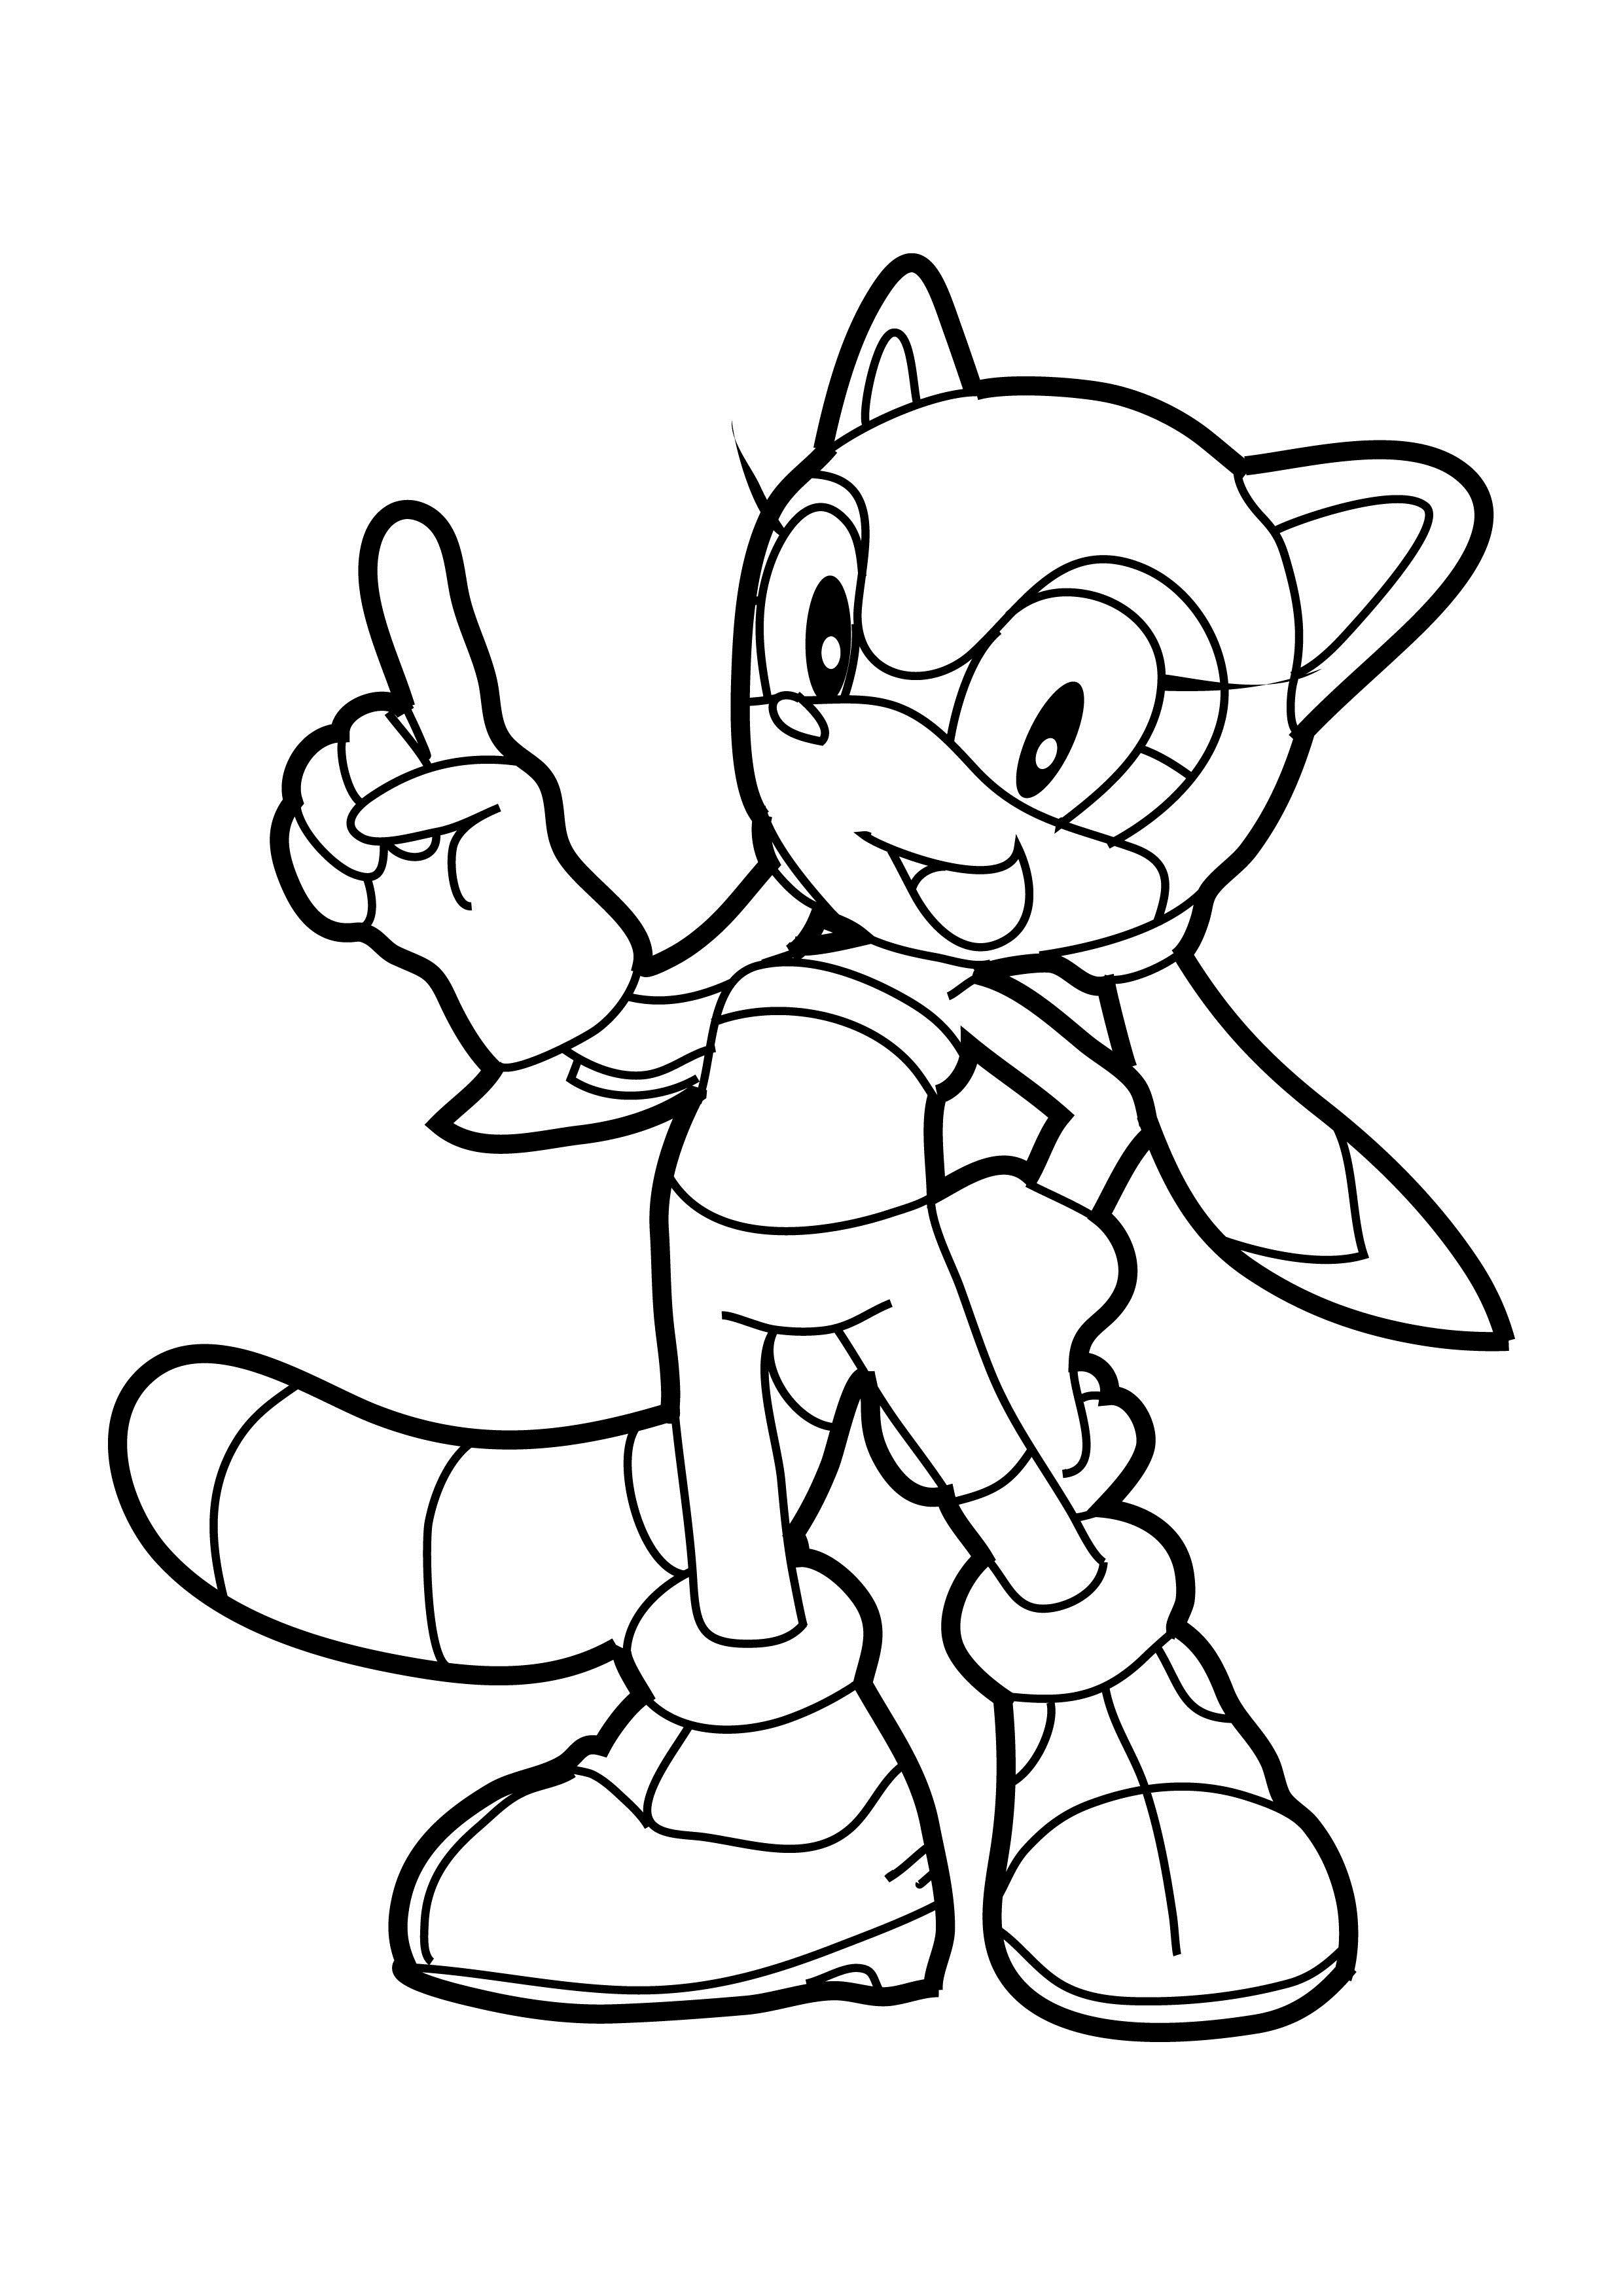 sonic the hedgehog images to color sonic the hedgehog coloring pages to download and print color hedgehog sonic images to the